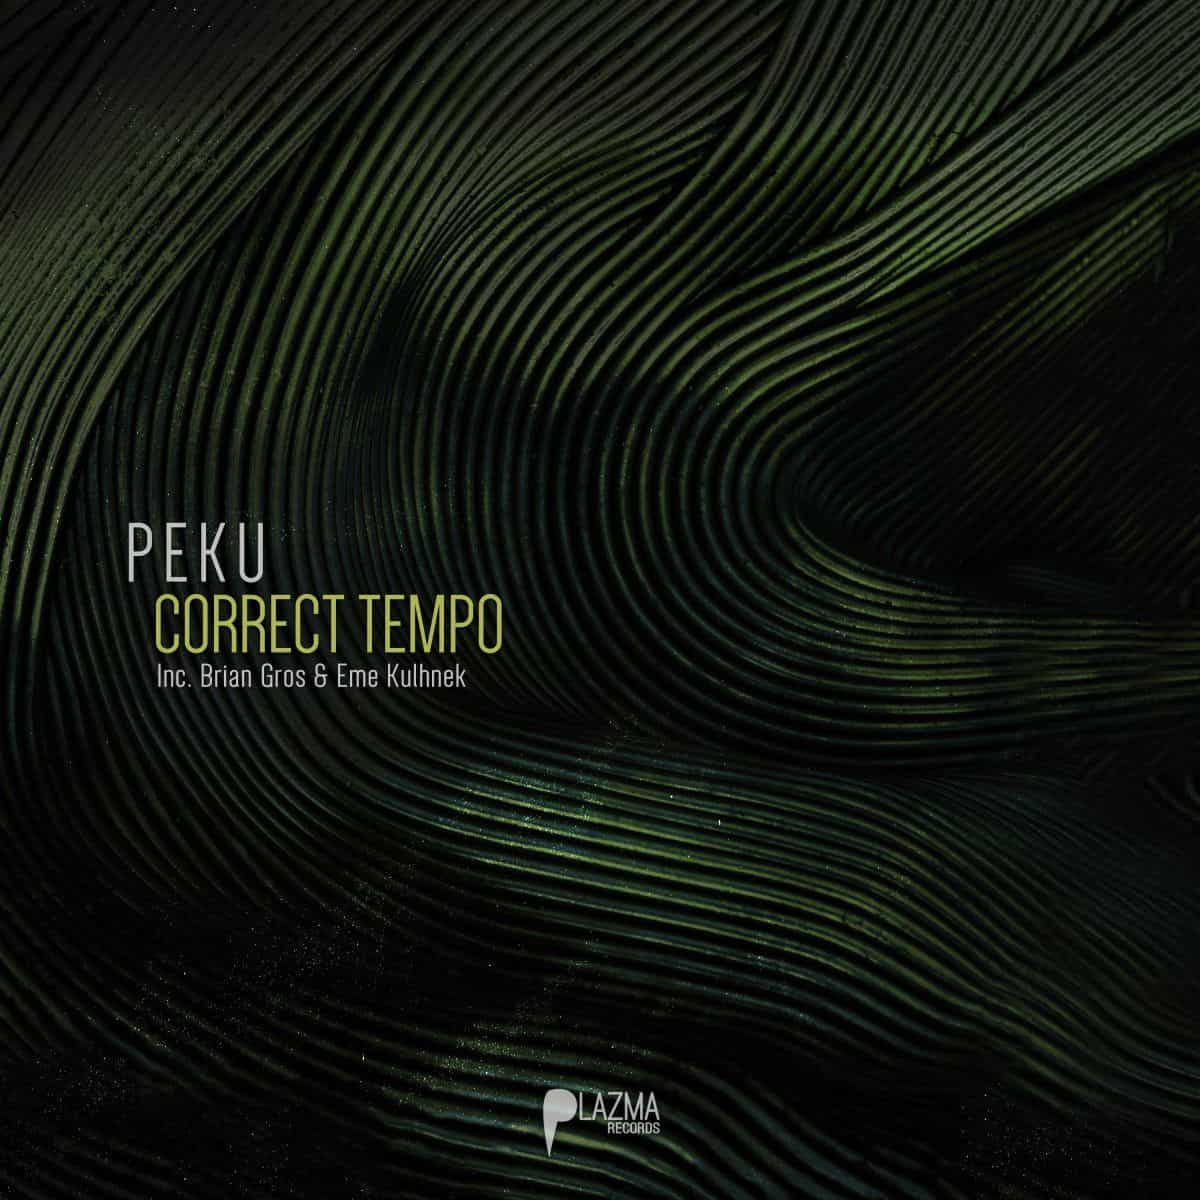 Peku - Correct Tempo EP | Minimal Techno release at Plazma Records